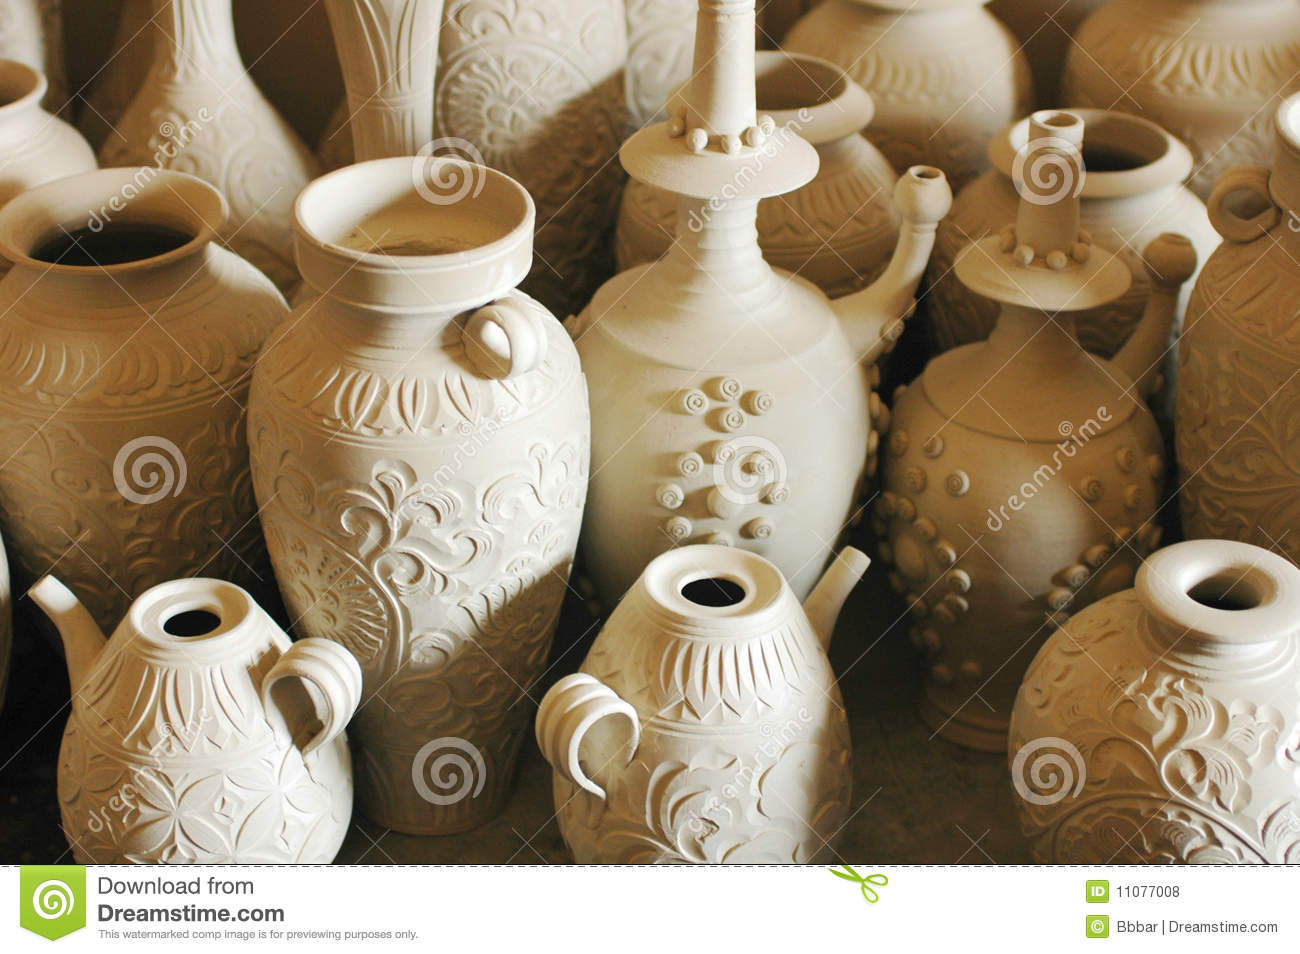 Clay pots and vases stock photo image of earth handcraft 11077008 clay pots and vases reviewsmspy